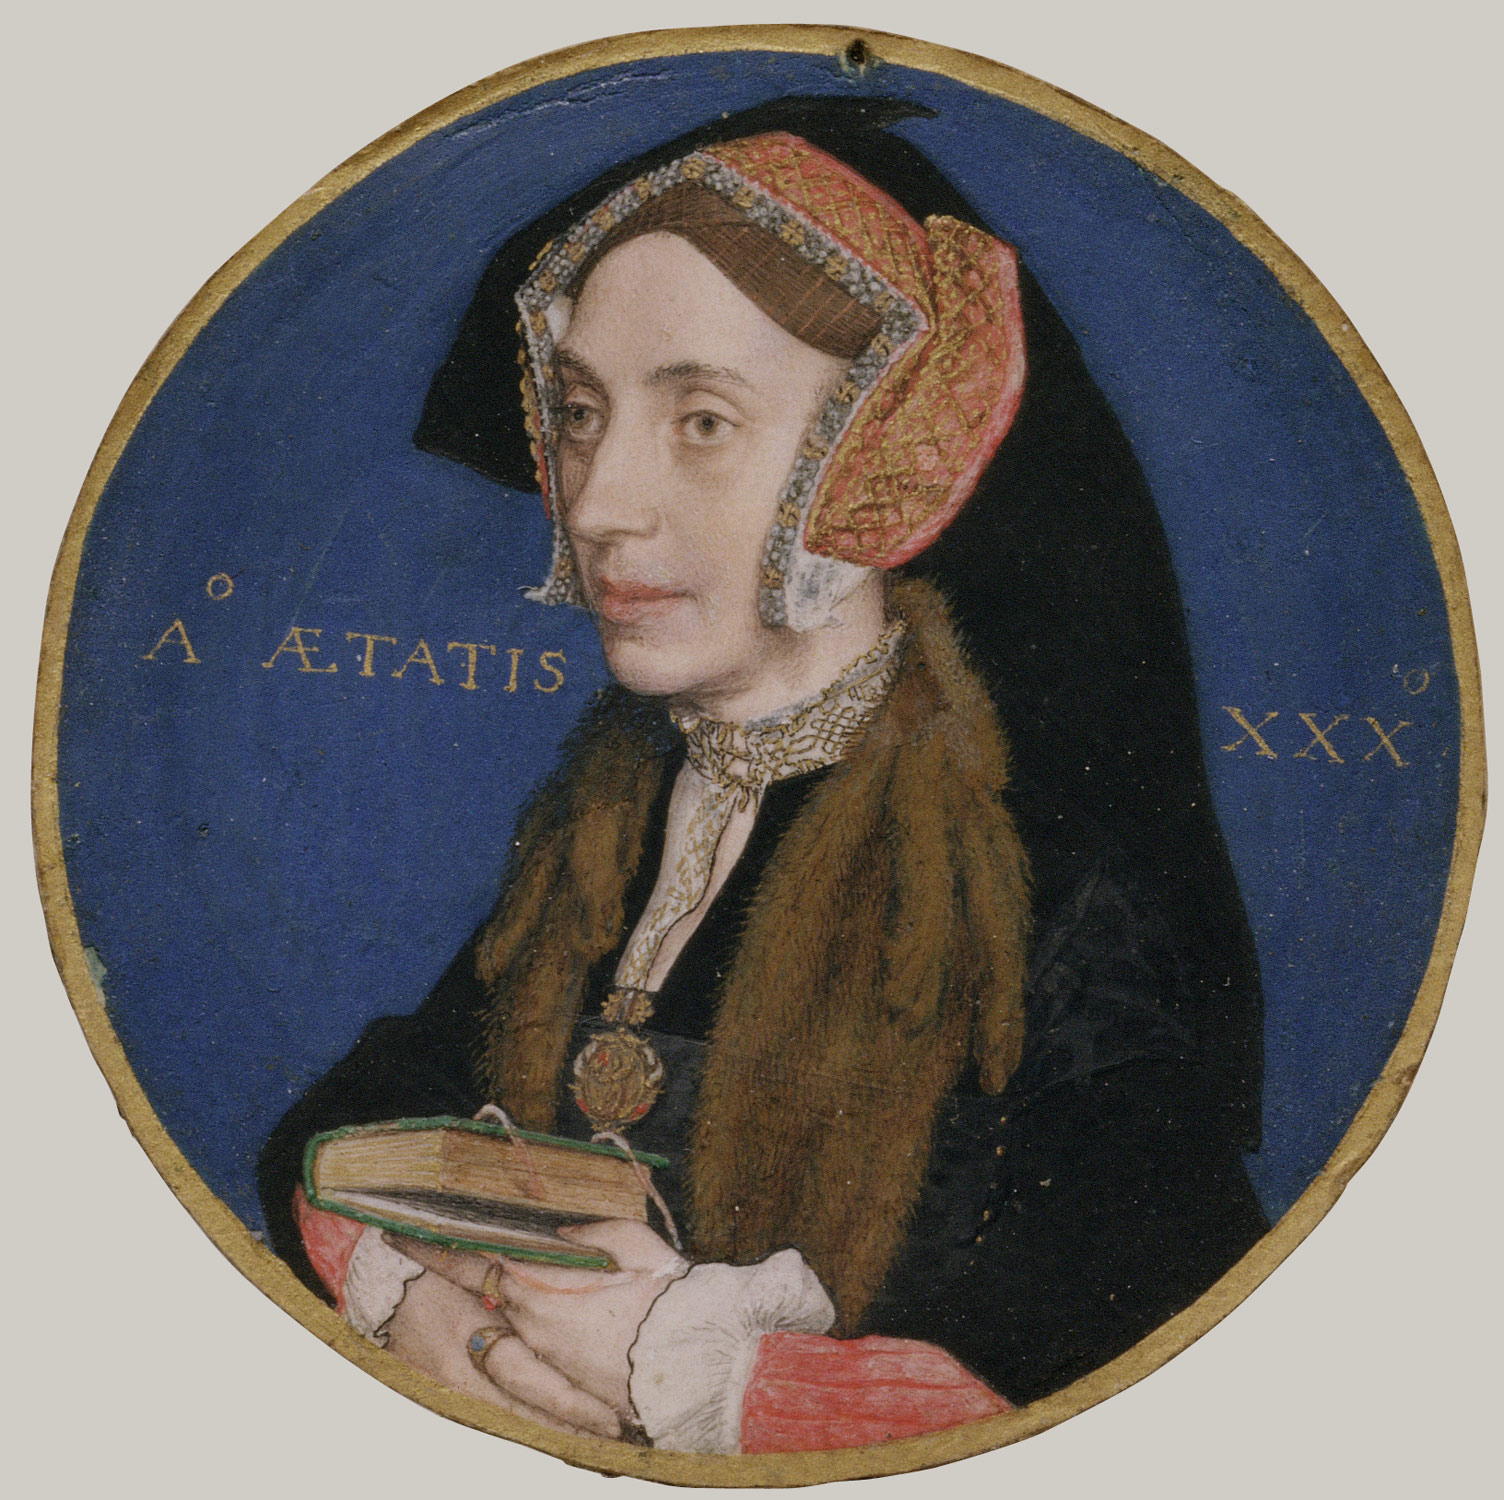 Margaret More (1505-1544), Wife of William Roper